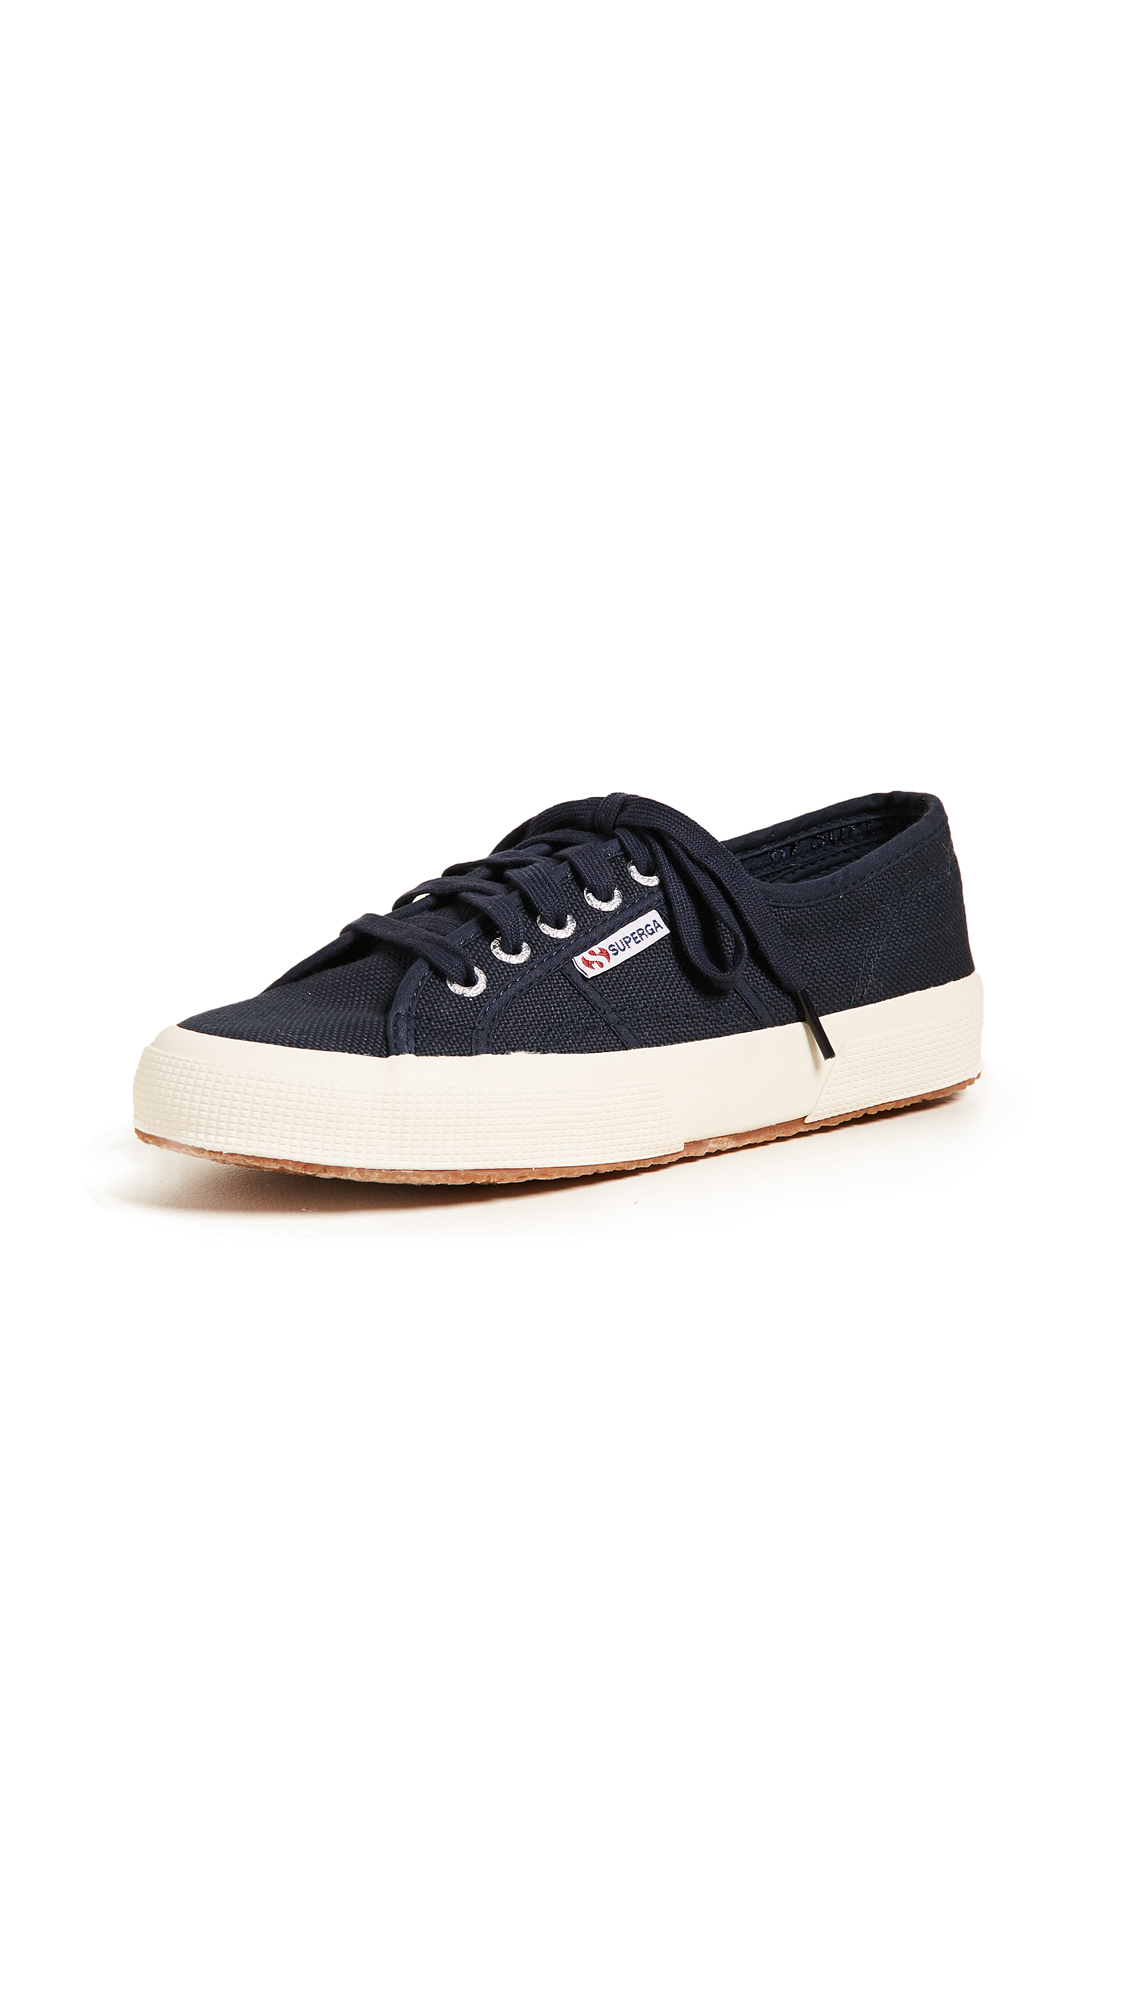 Superga 2750 Cotu Classic Sneakers - Navy